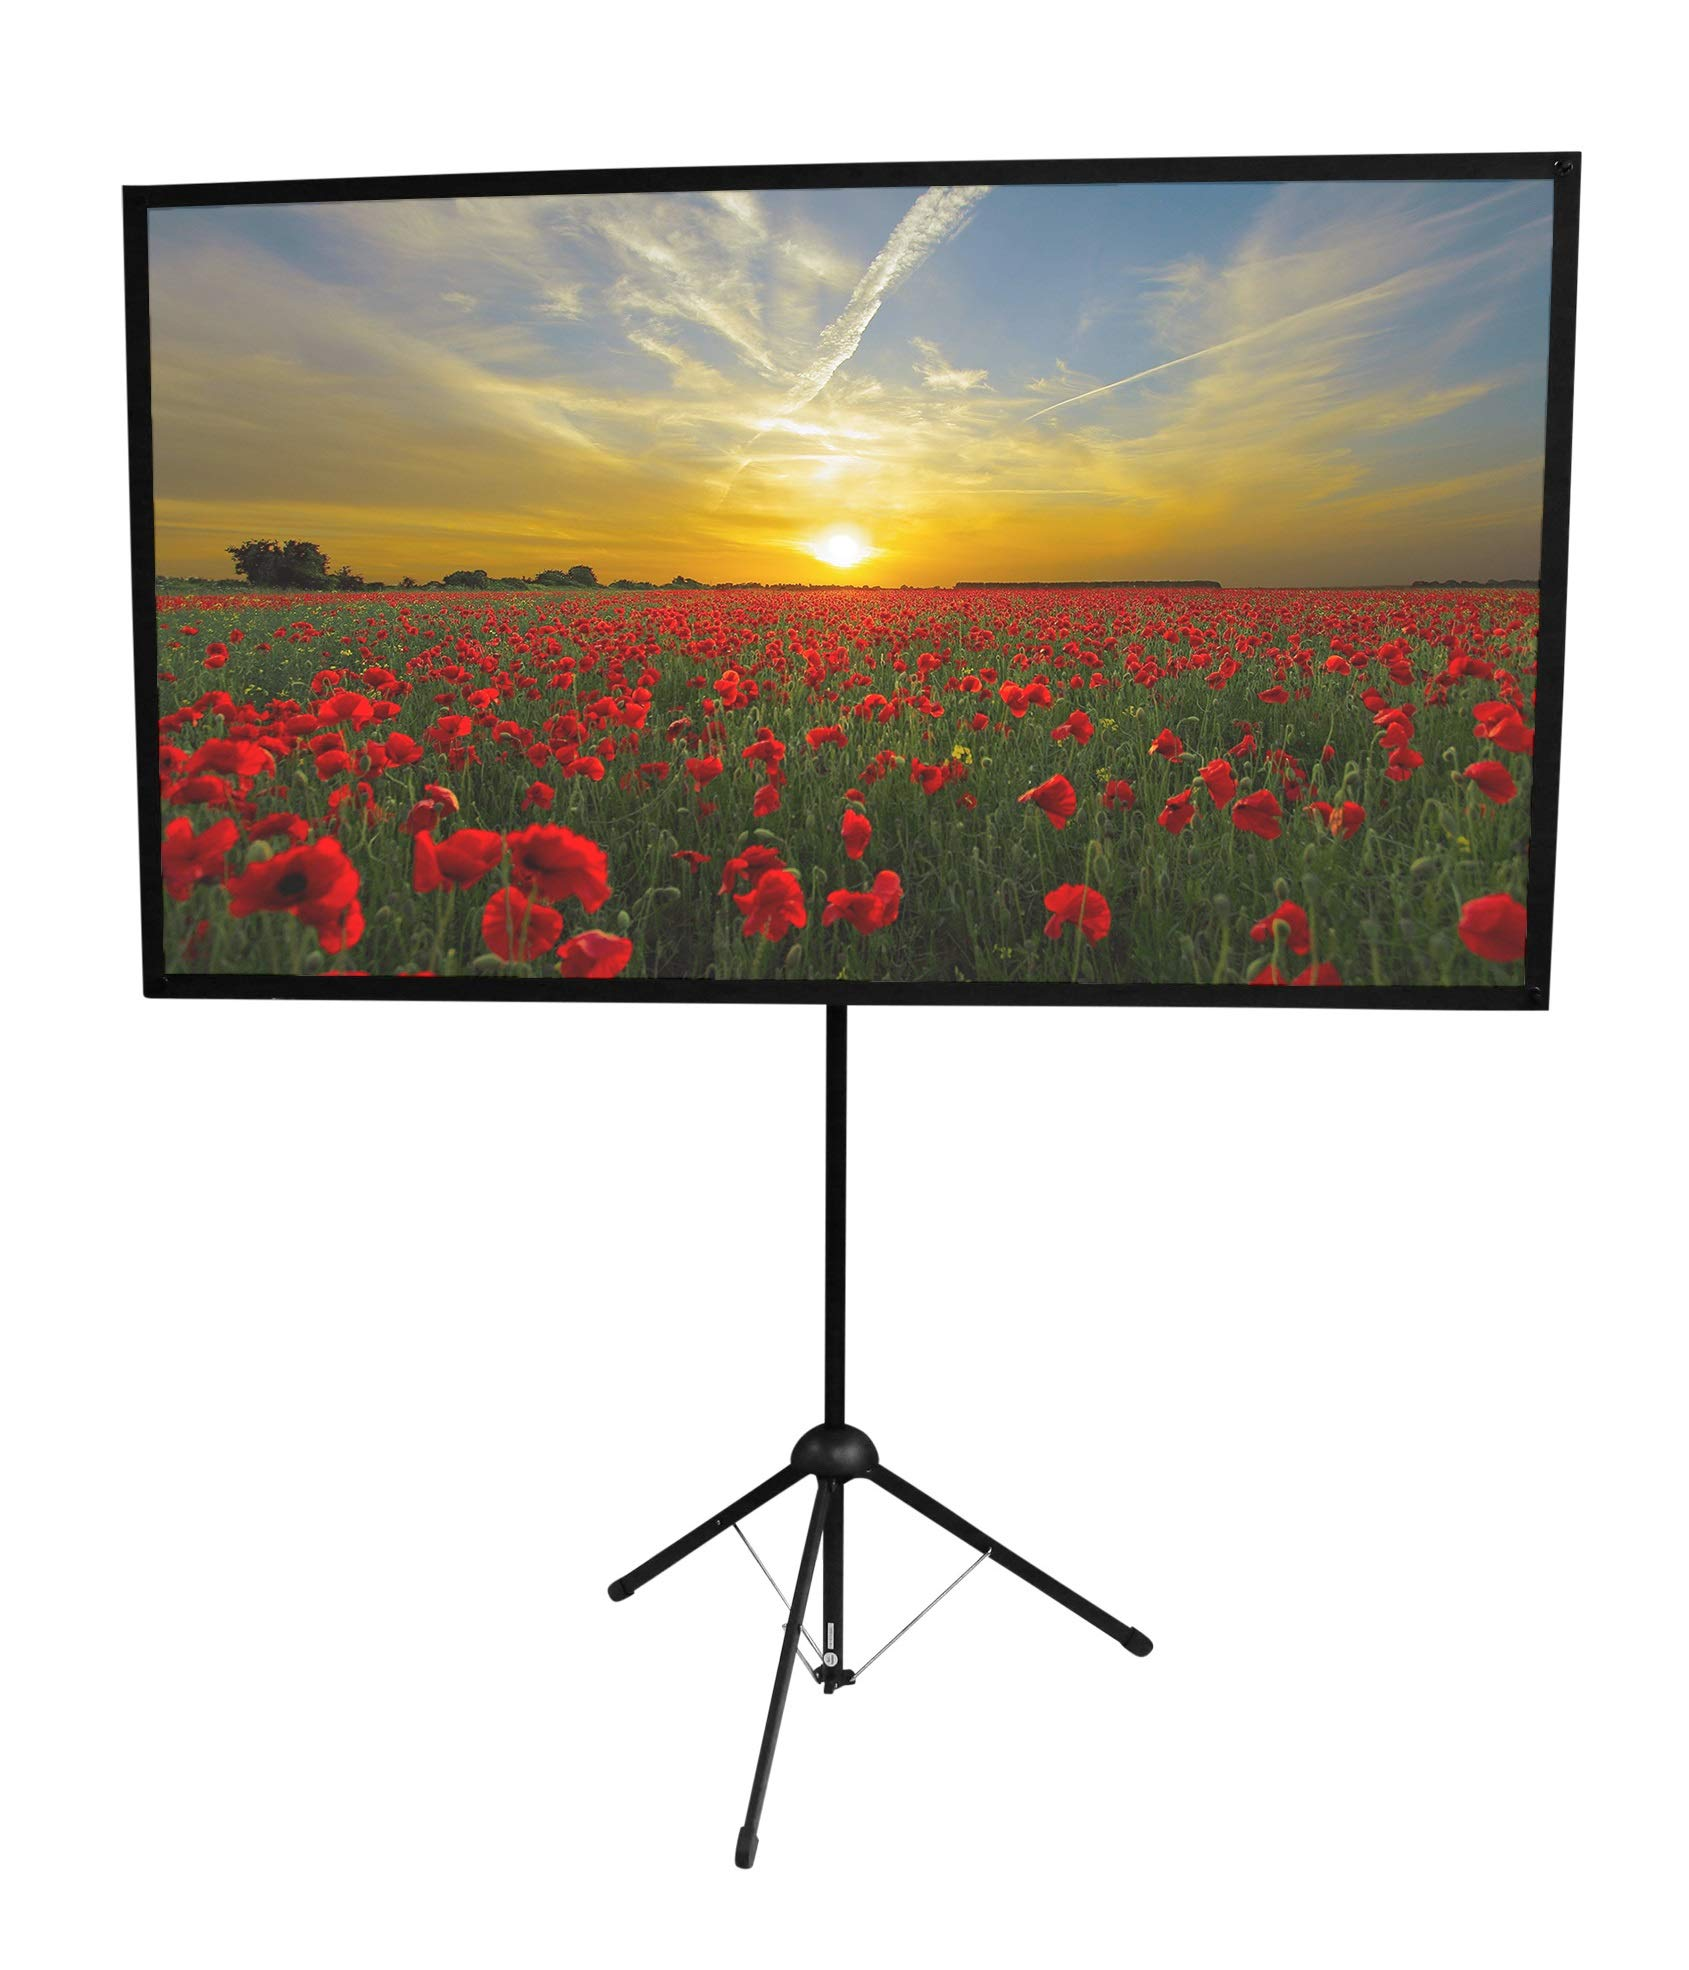 GO-70: 2-in-1 Projector Screen | 70 inch | Mounts on Tripod and Wall | 16:9 Format | 9 lbs | 2 Minute Setup | Includes Carrying Bag | for Mobile Presentation and Home Entertainment |4K Ultra HD Ready